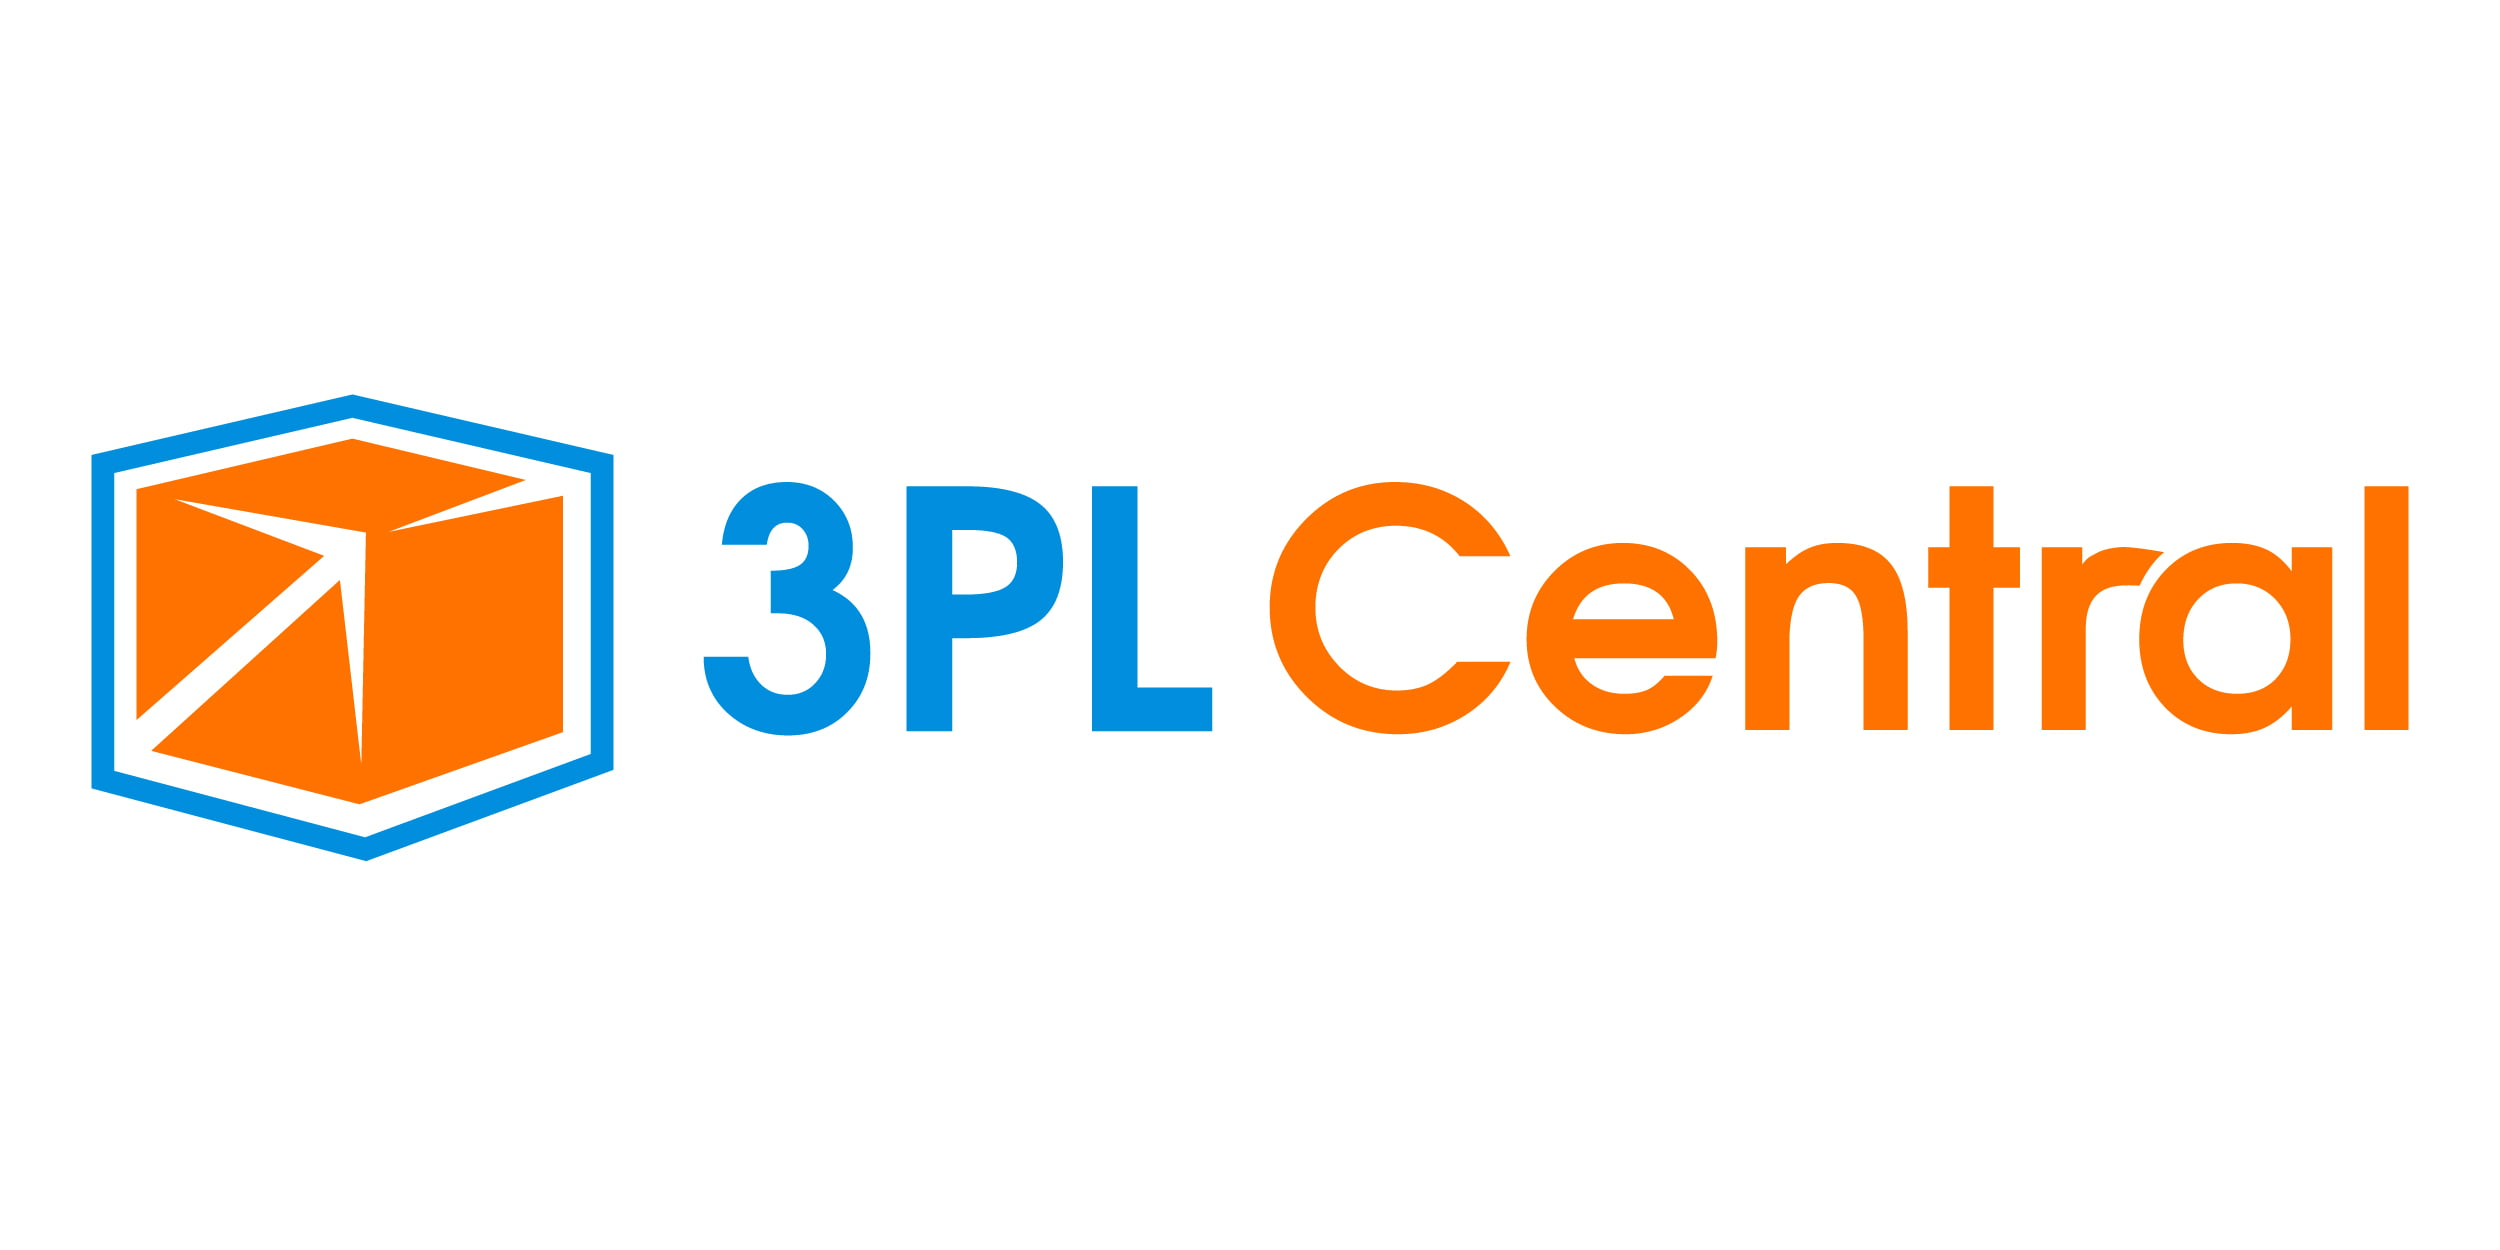 3PL Central Releases SmartScan, a Modern Mobile Scanning Solution That Delivers 'The Paperless Warehouse' on Virtually Any Device